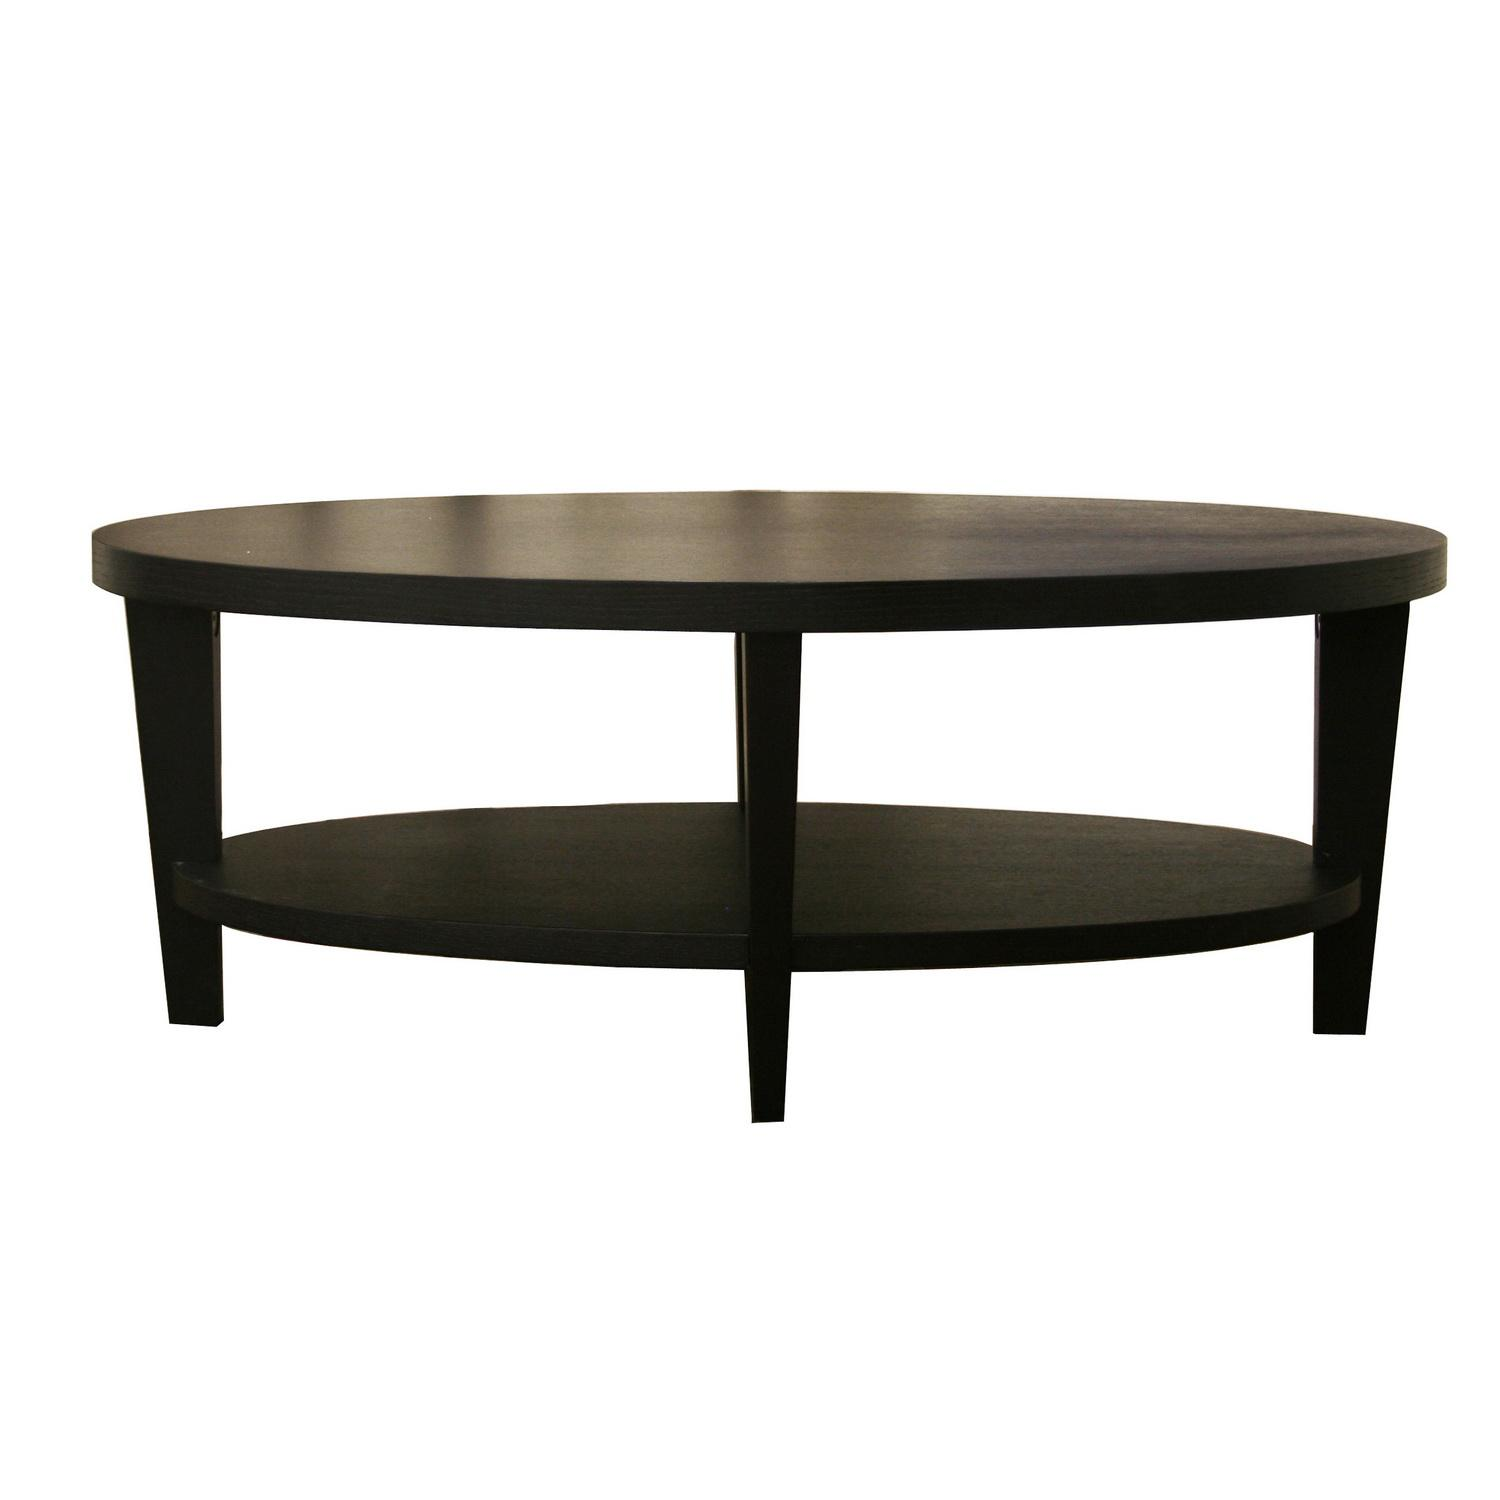 charleston modern oval black wood coffee table  free shipping  - charleston modern oval black wood coffee table